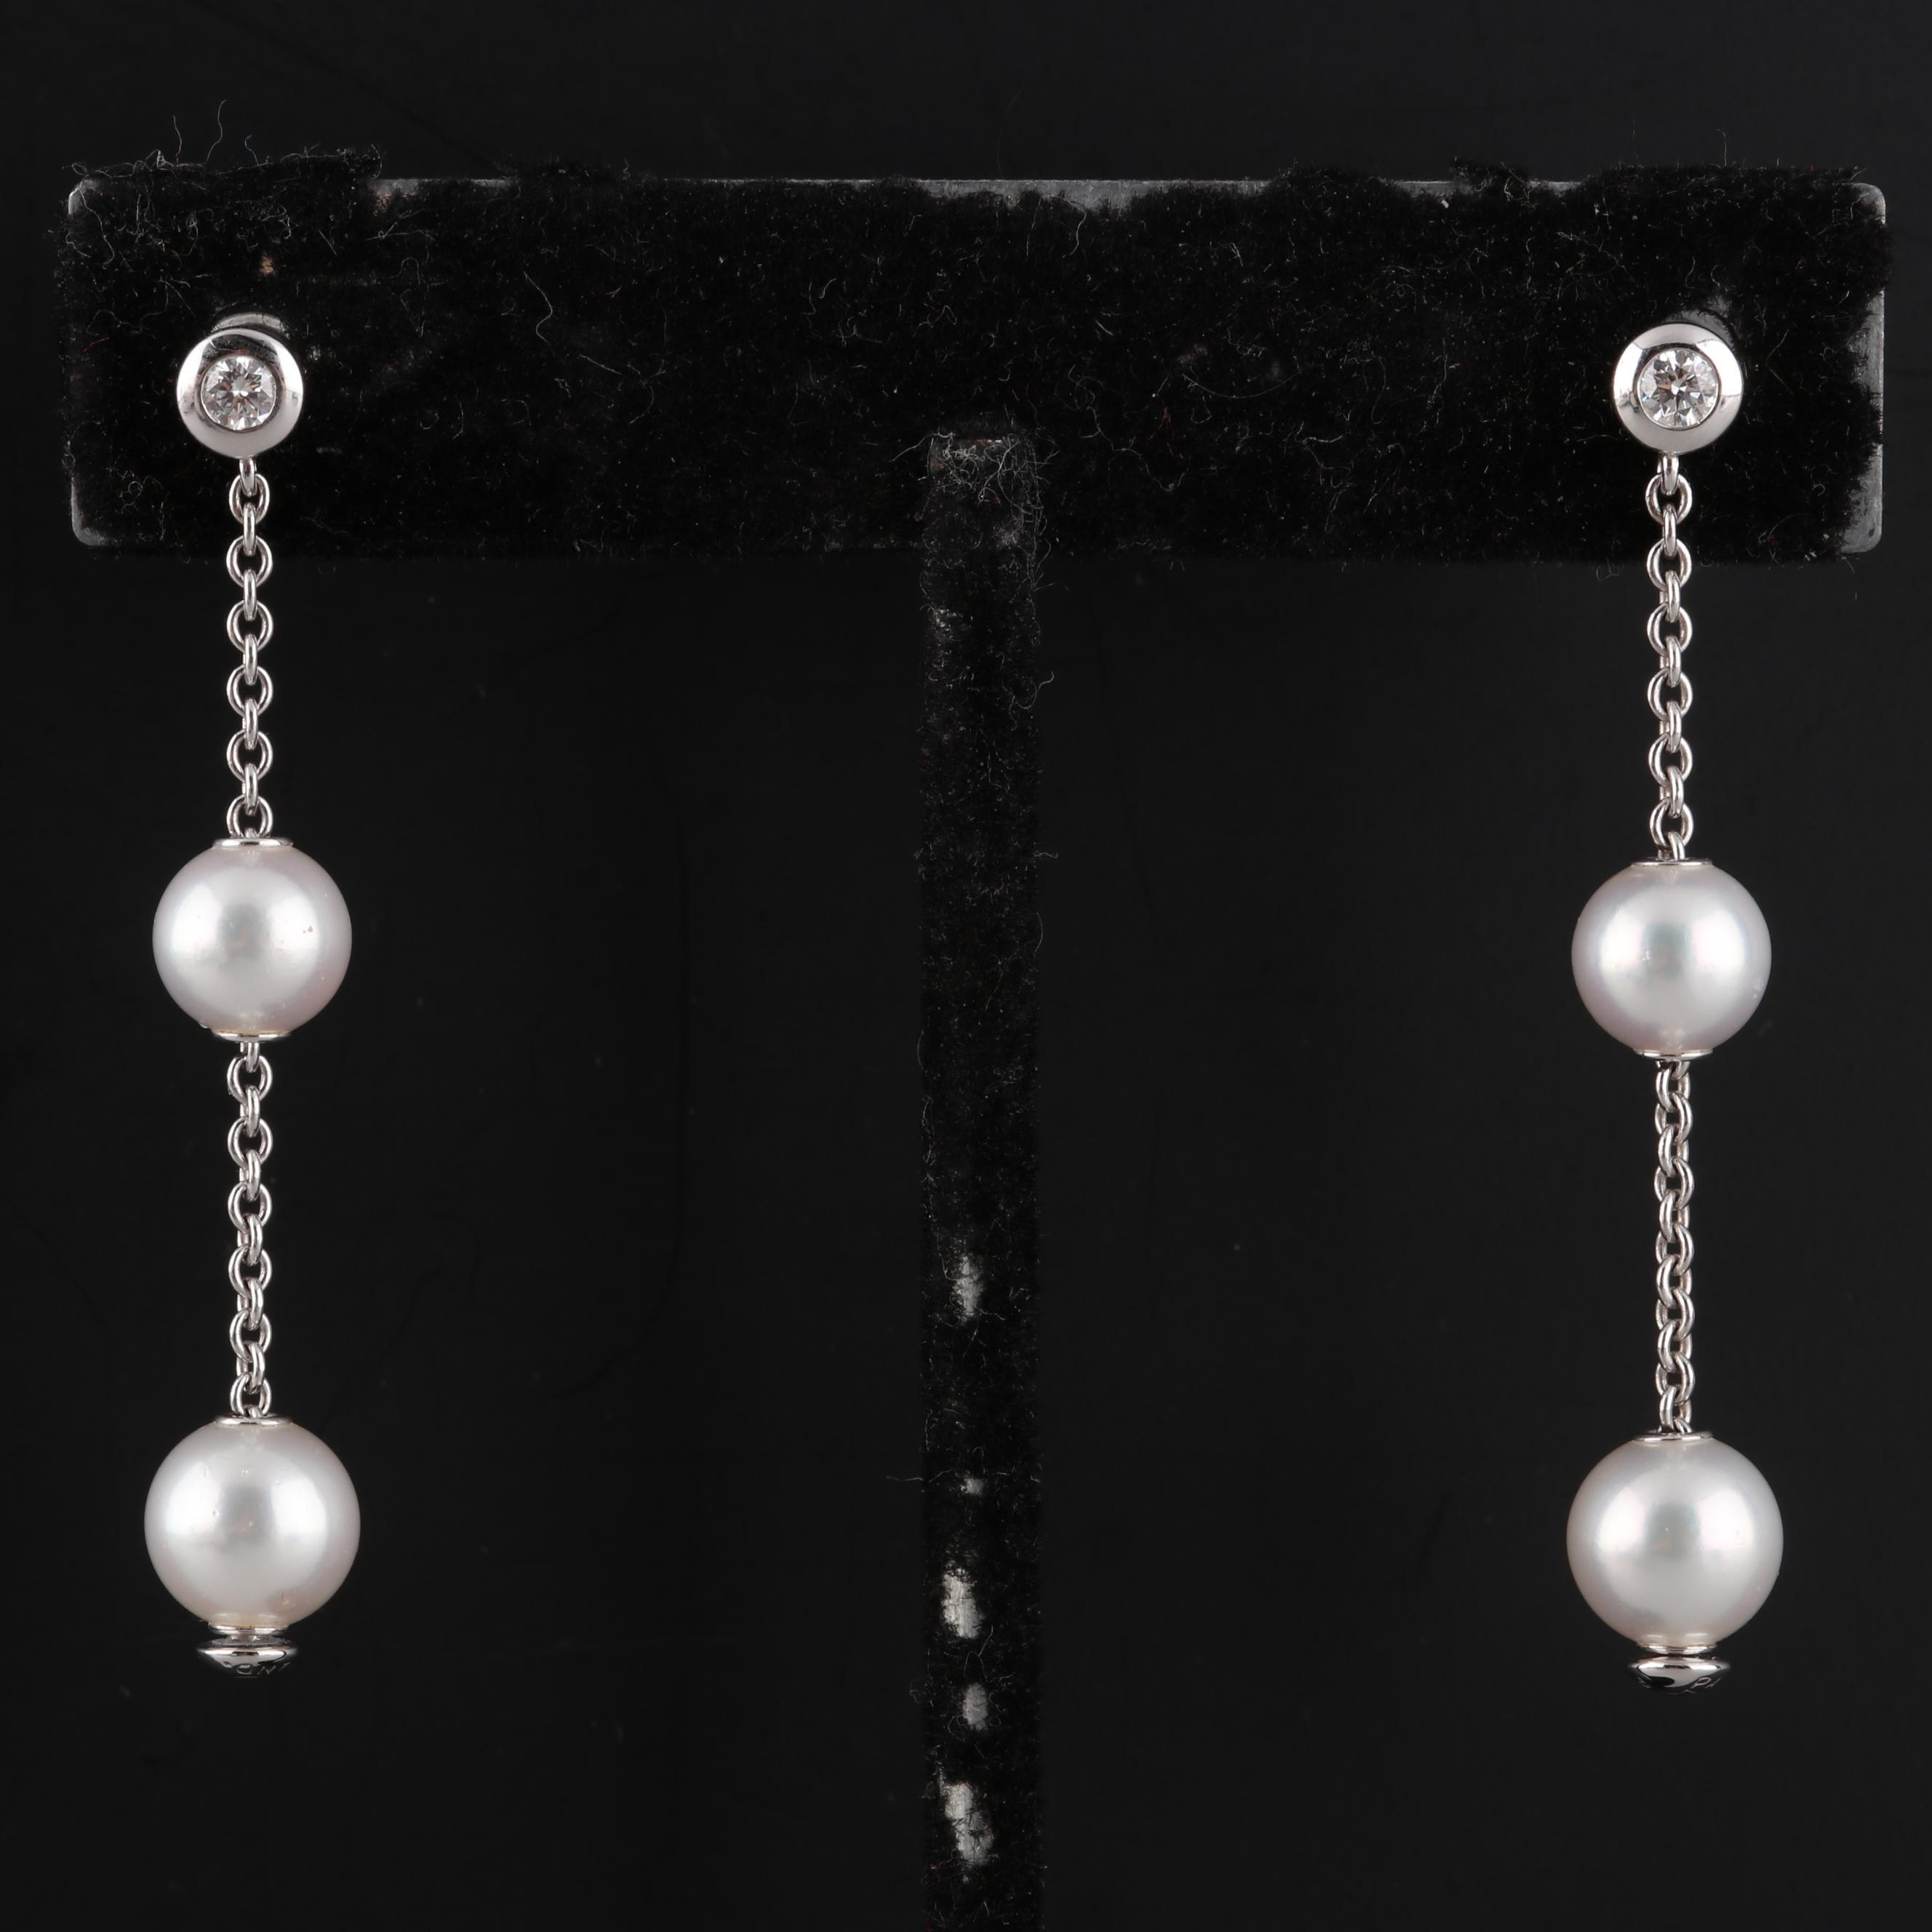 Mikimoto 18K White Gold Cultured Pearl and Diamond Earrings